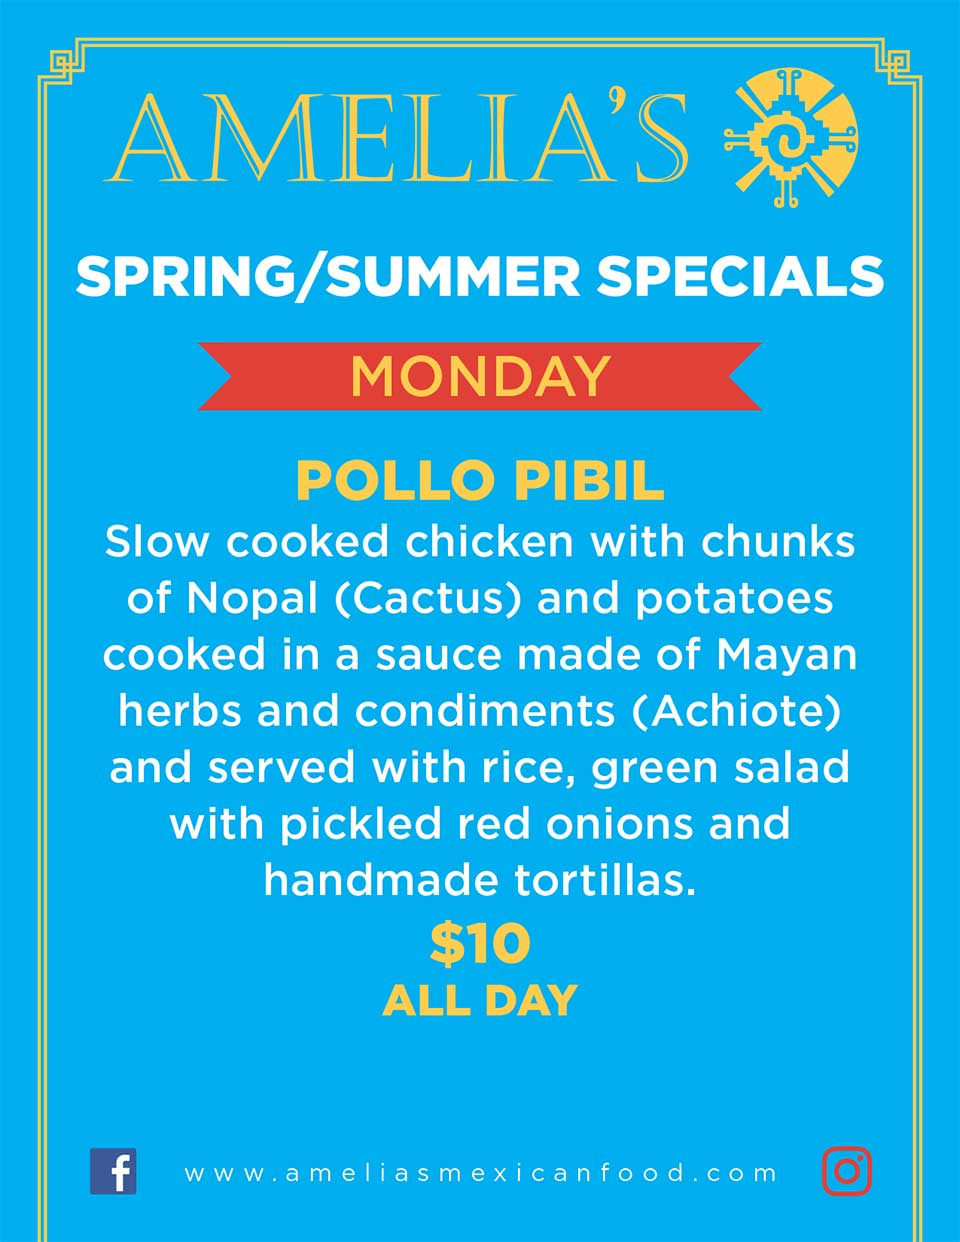 image of Amelia's Spring & Summer specials for Monday